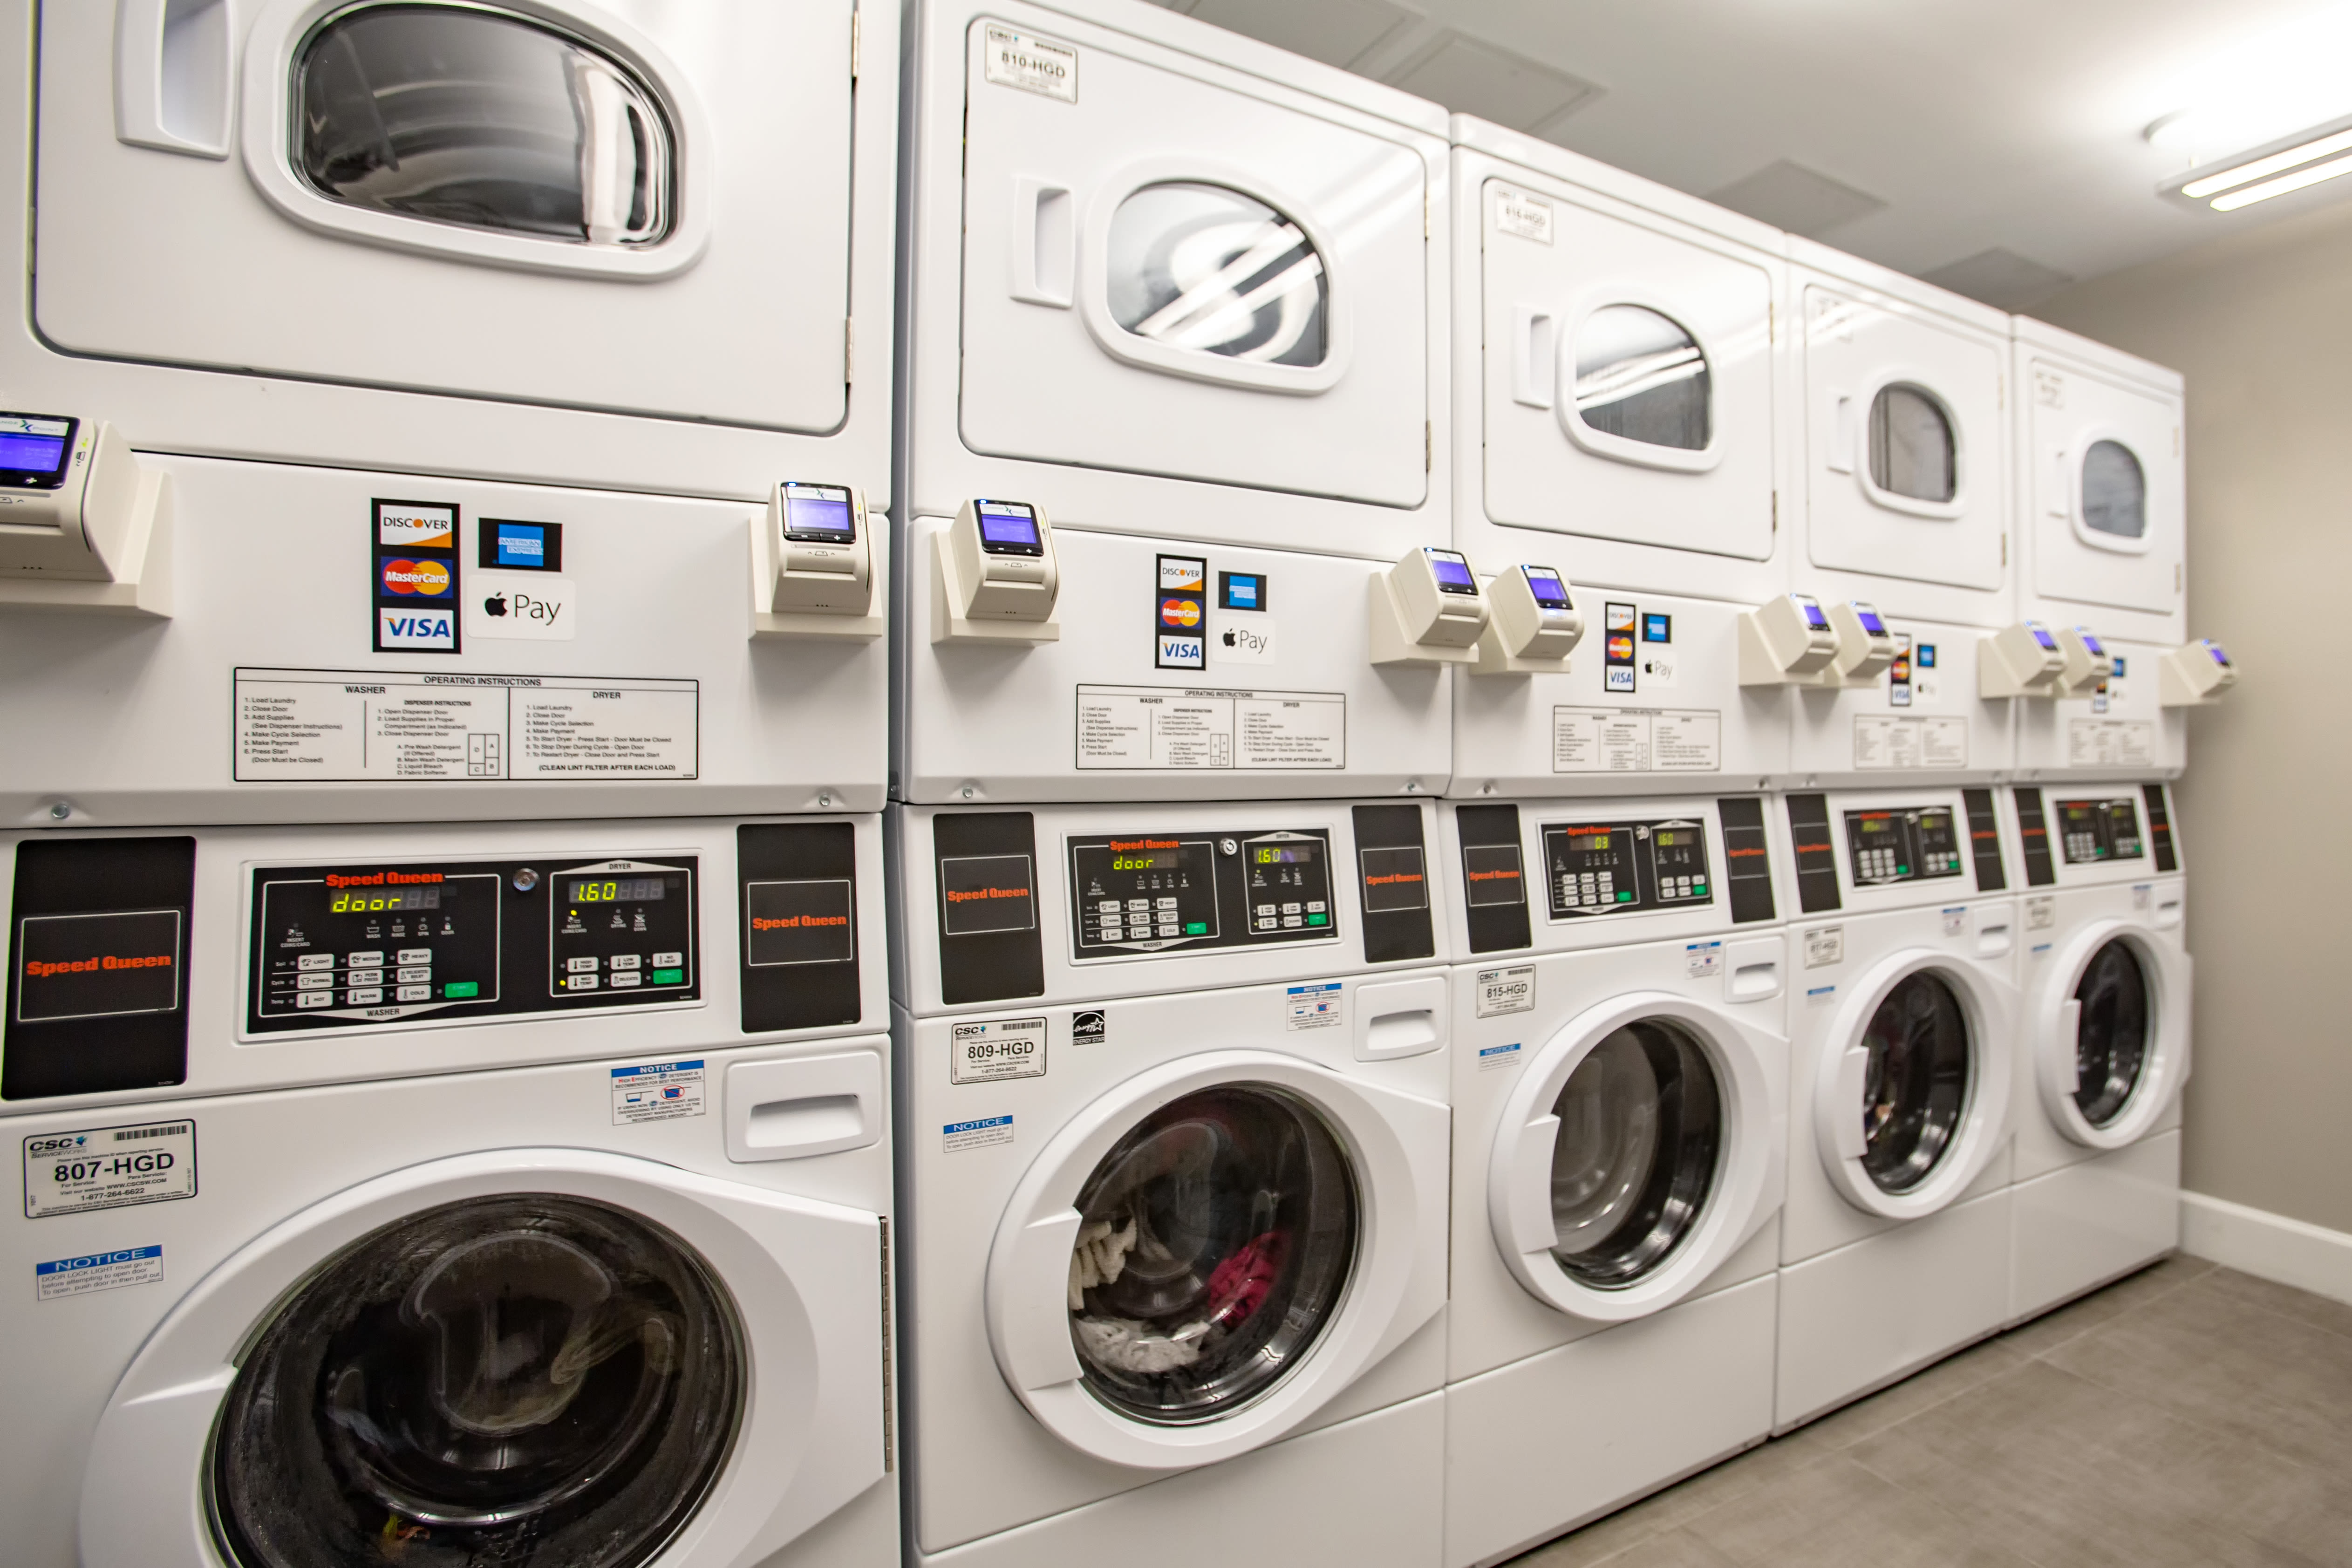 Laundry facility for resident use on site at Aliro Apartments in North Miami, FL